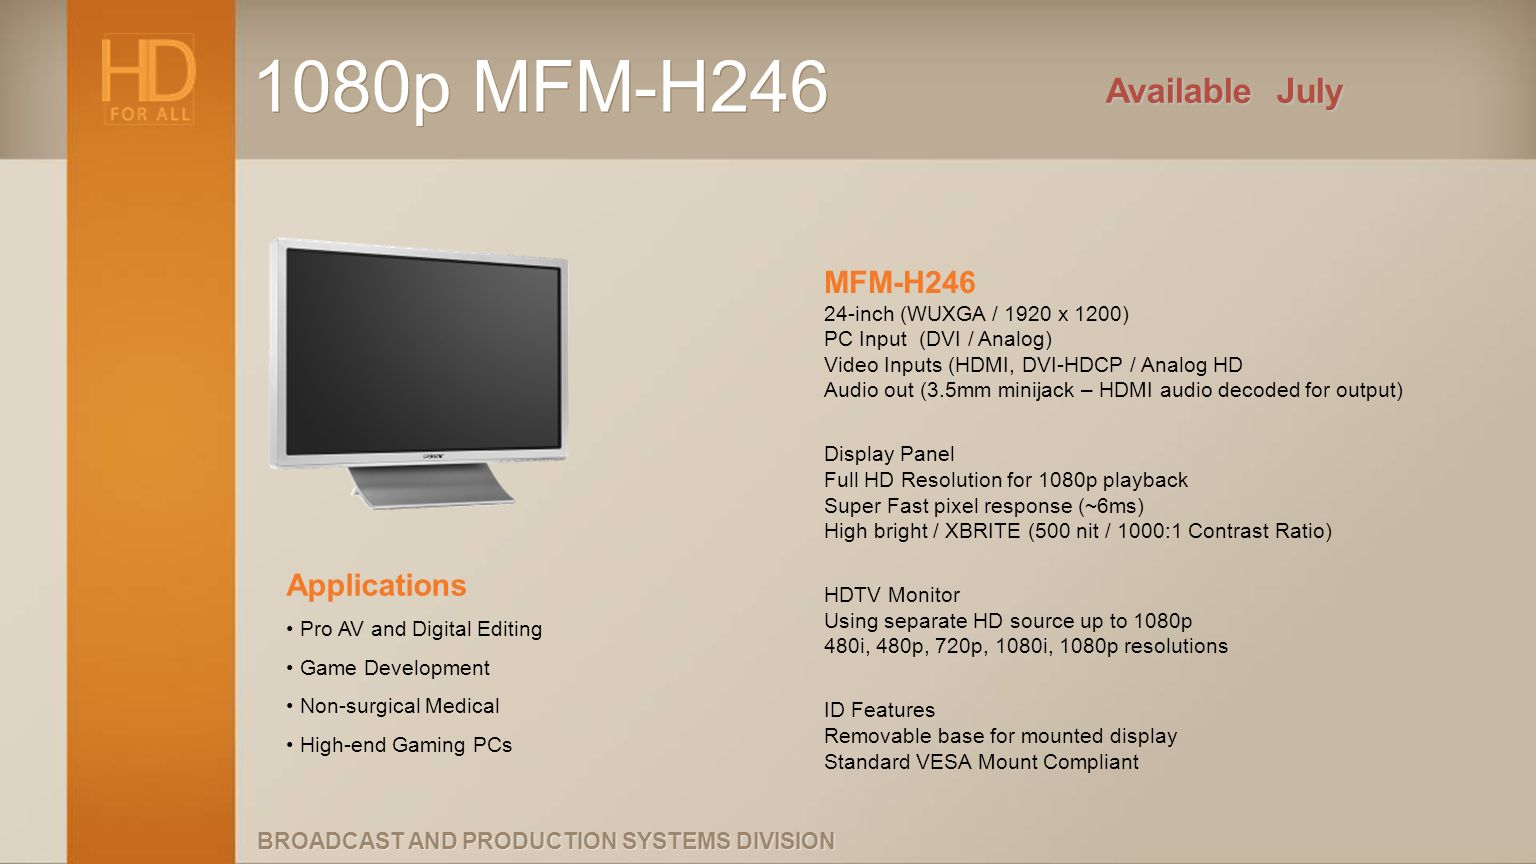 1080p MFM-H246 Available July.